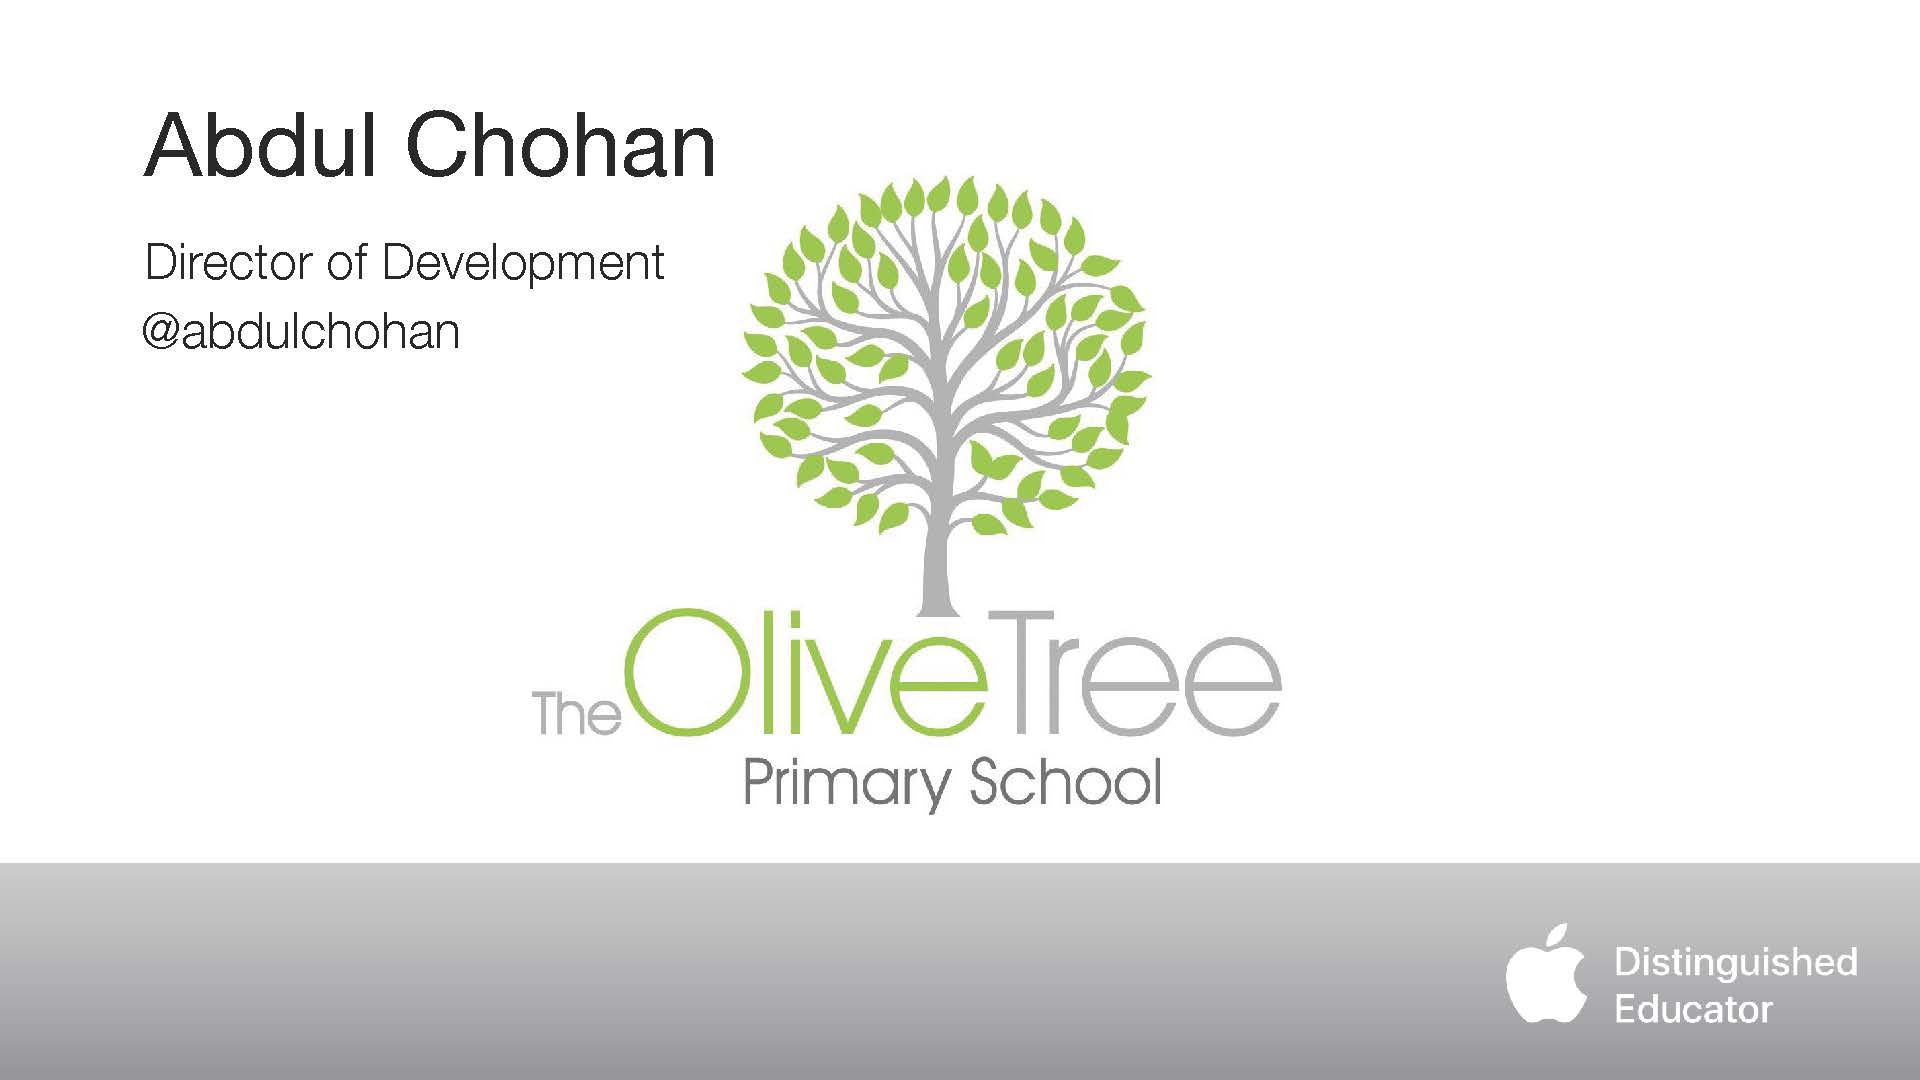 First page - The Olive Tree Primary School